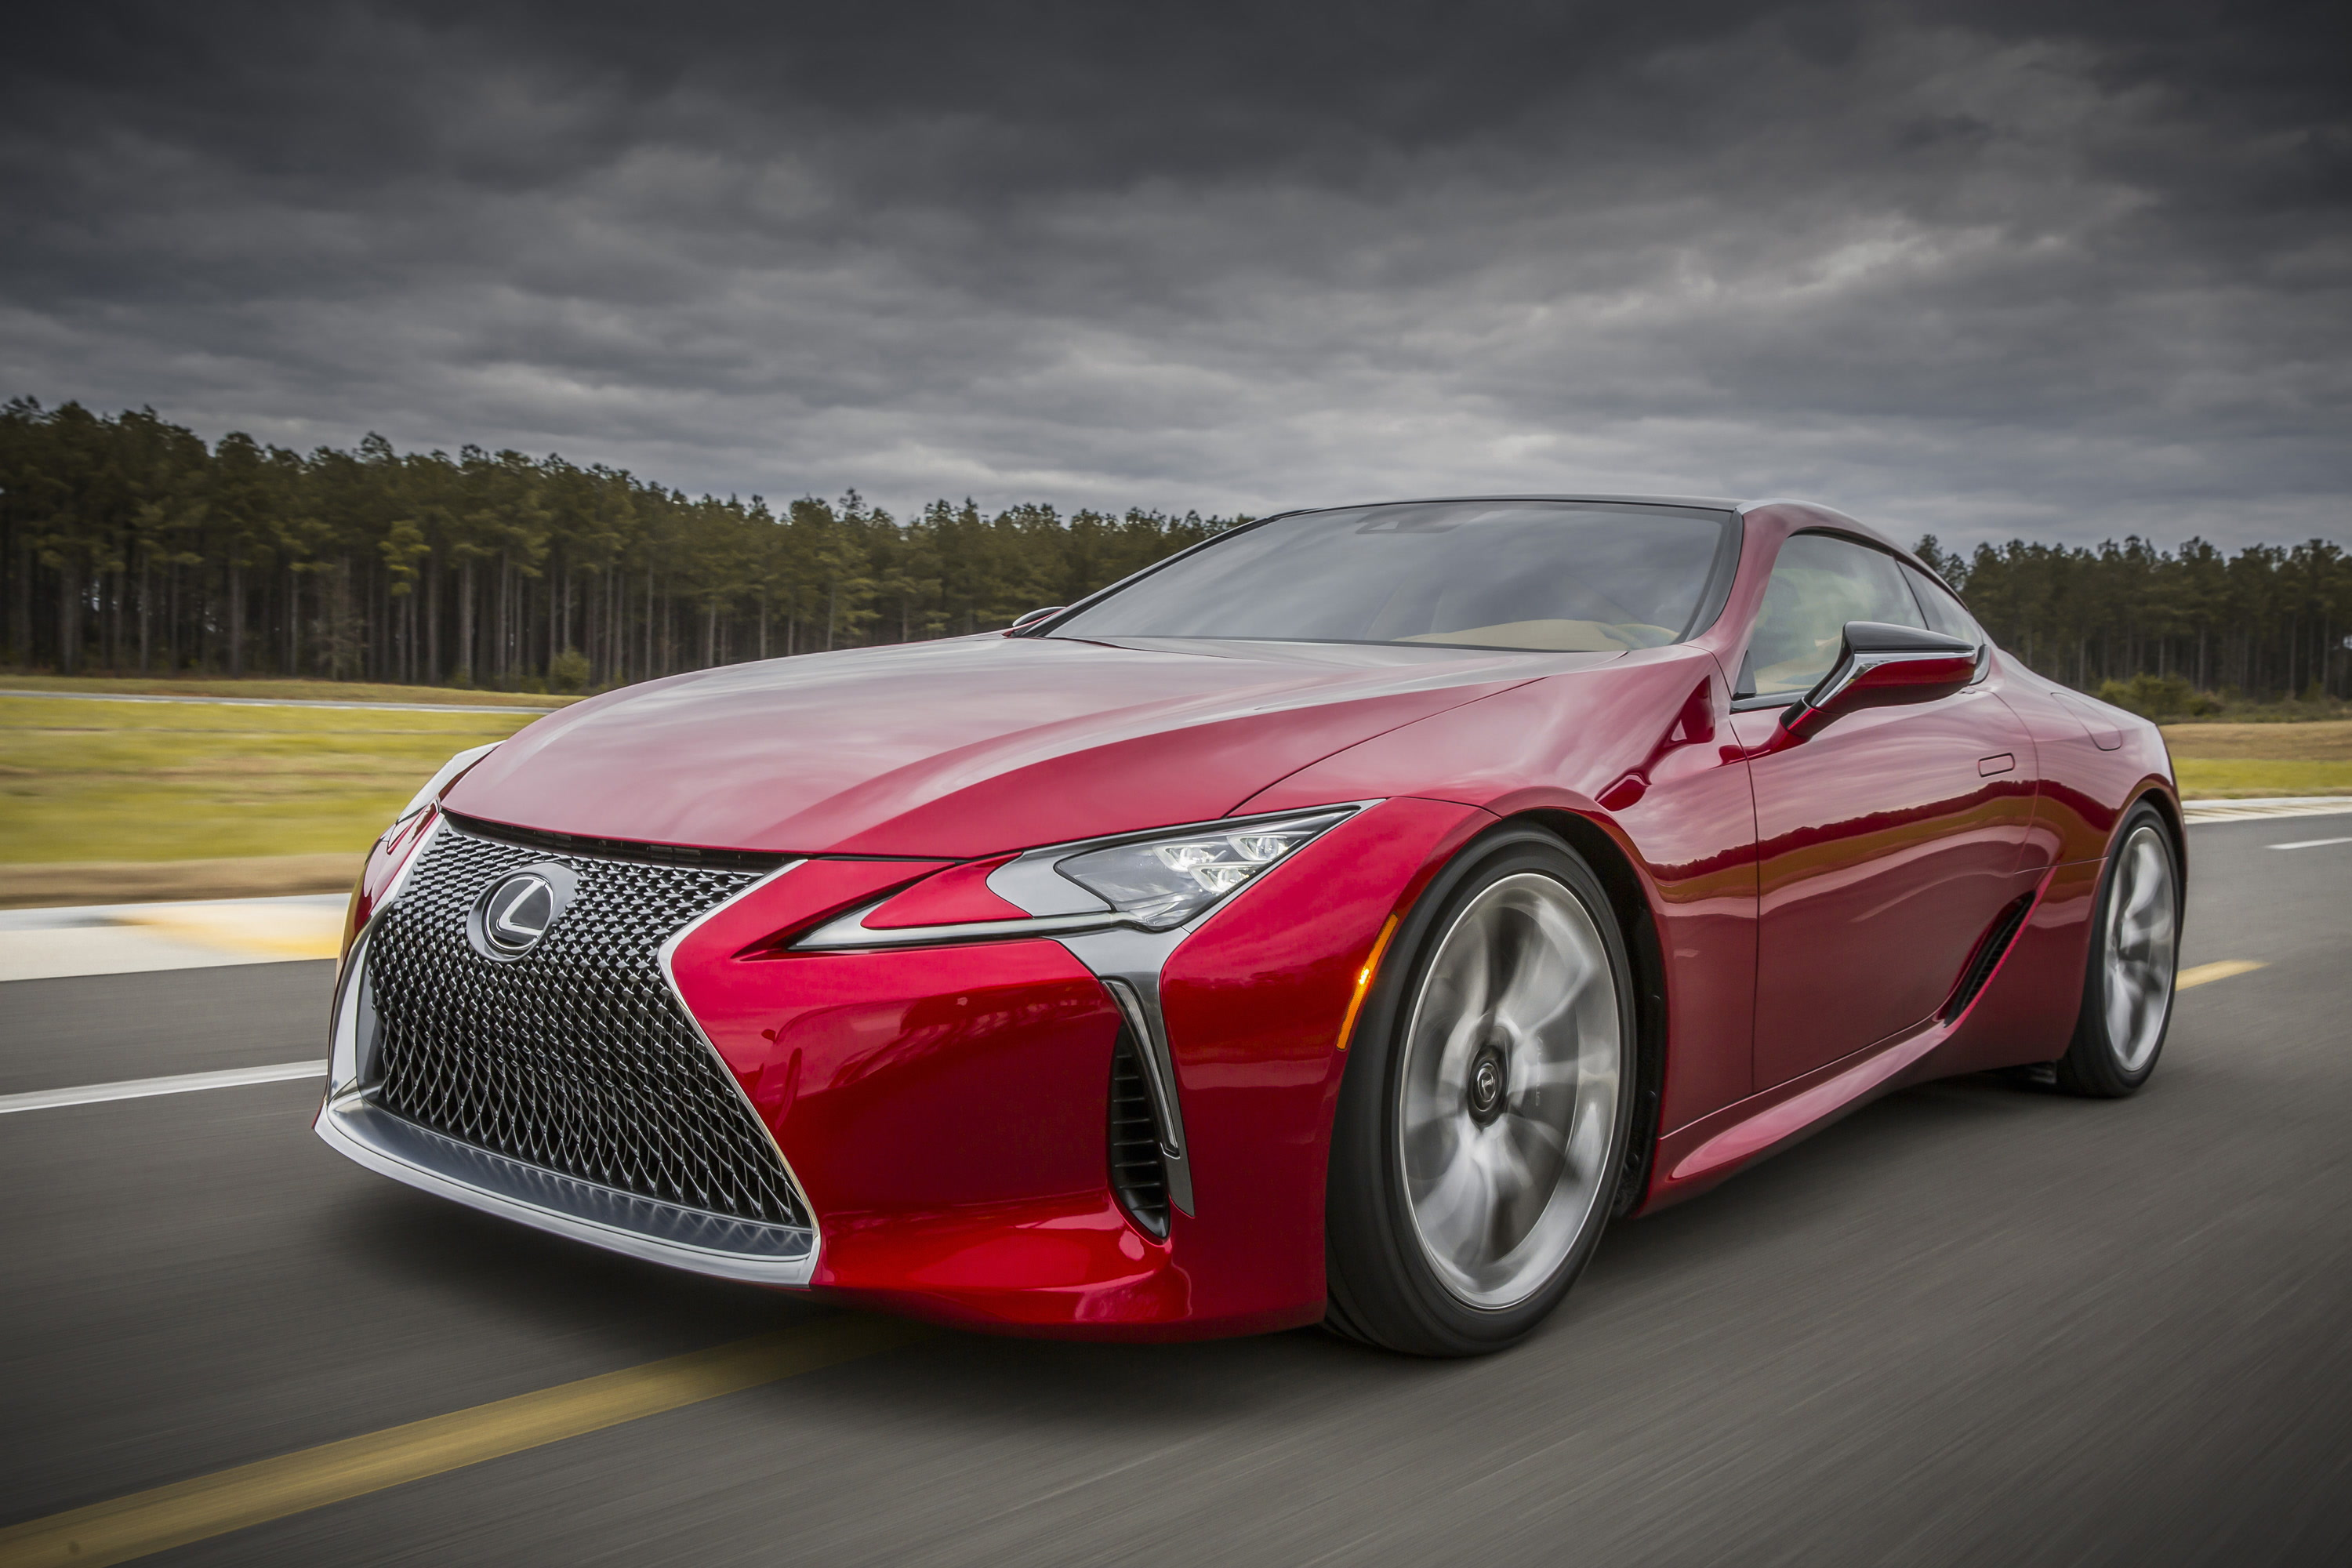 Lexus LC 500 luxury sports coupe is a sure shot head turner -